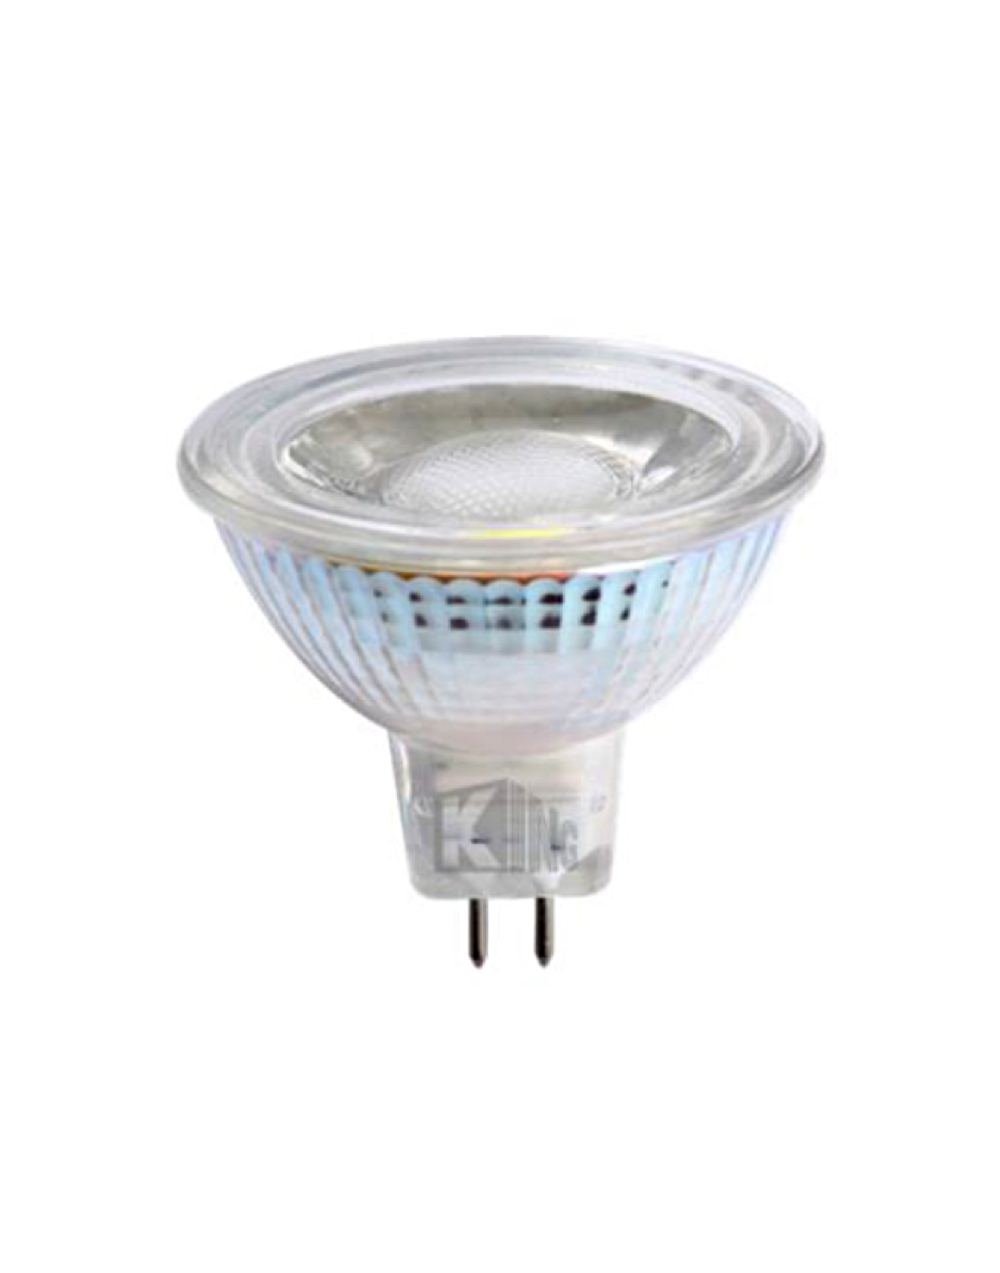 Ecoray Mr16 Led Light Bulb Smartray